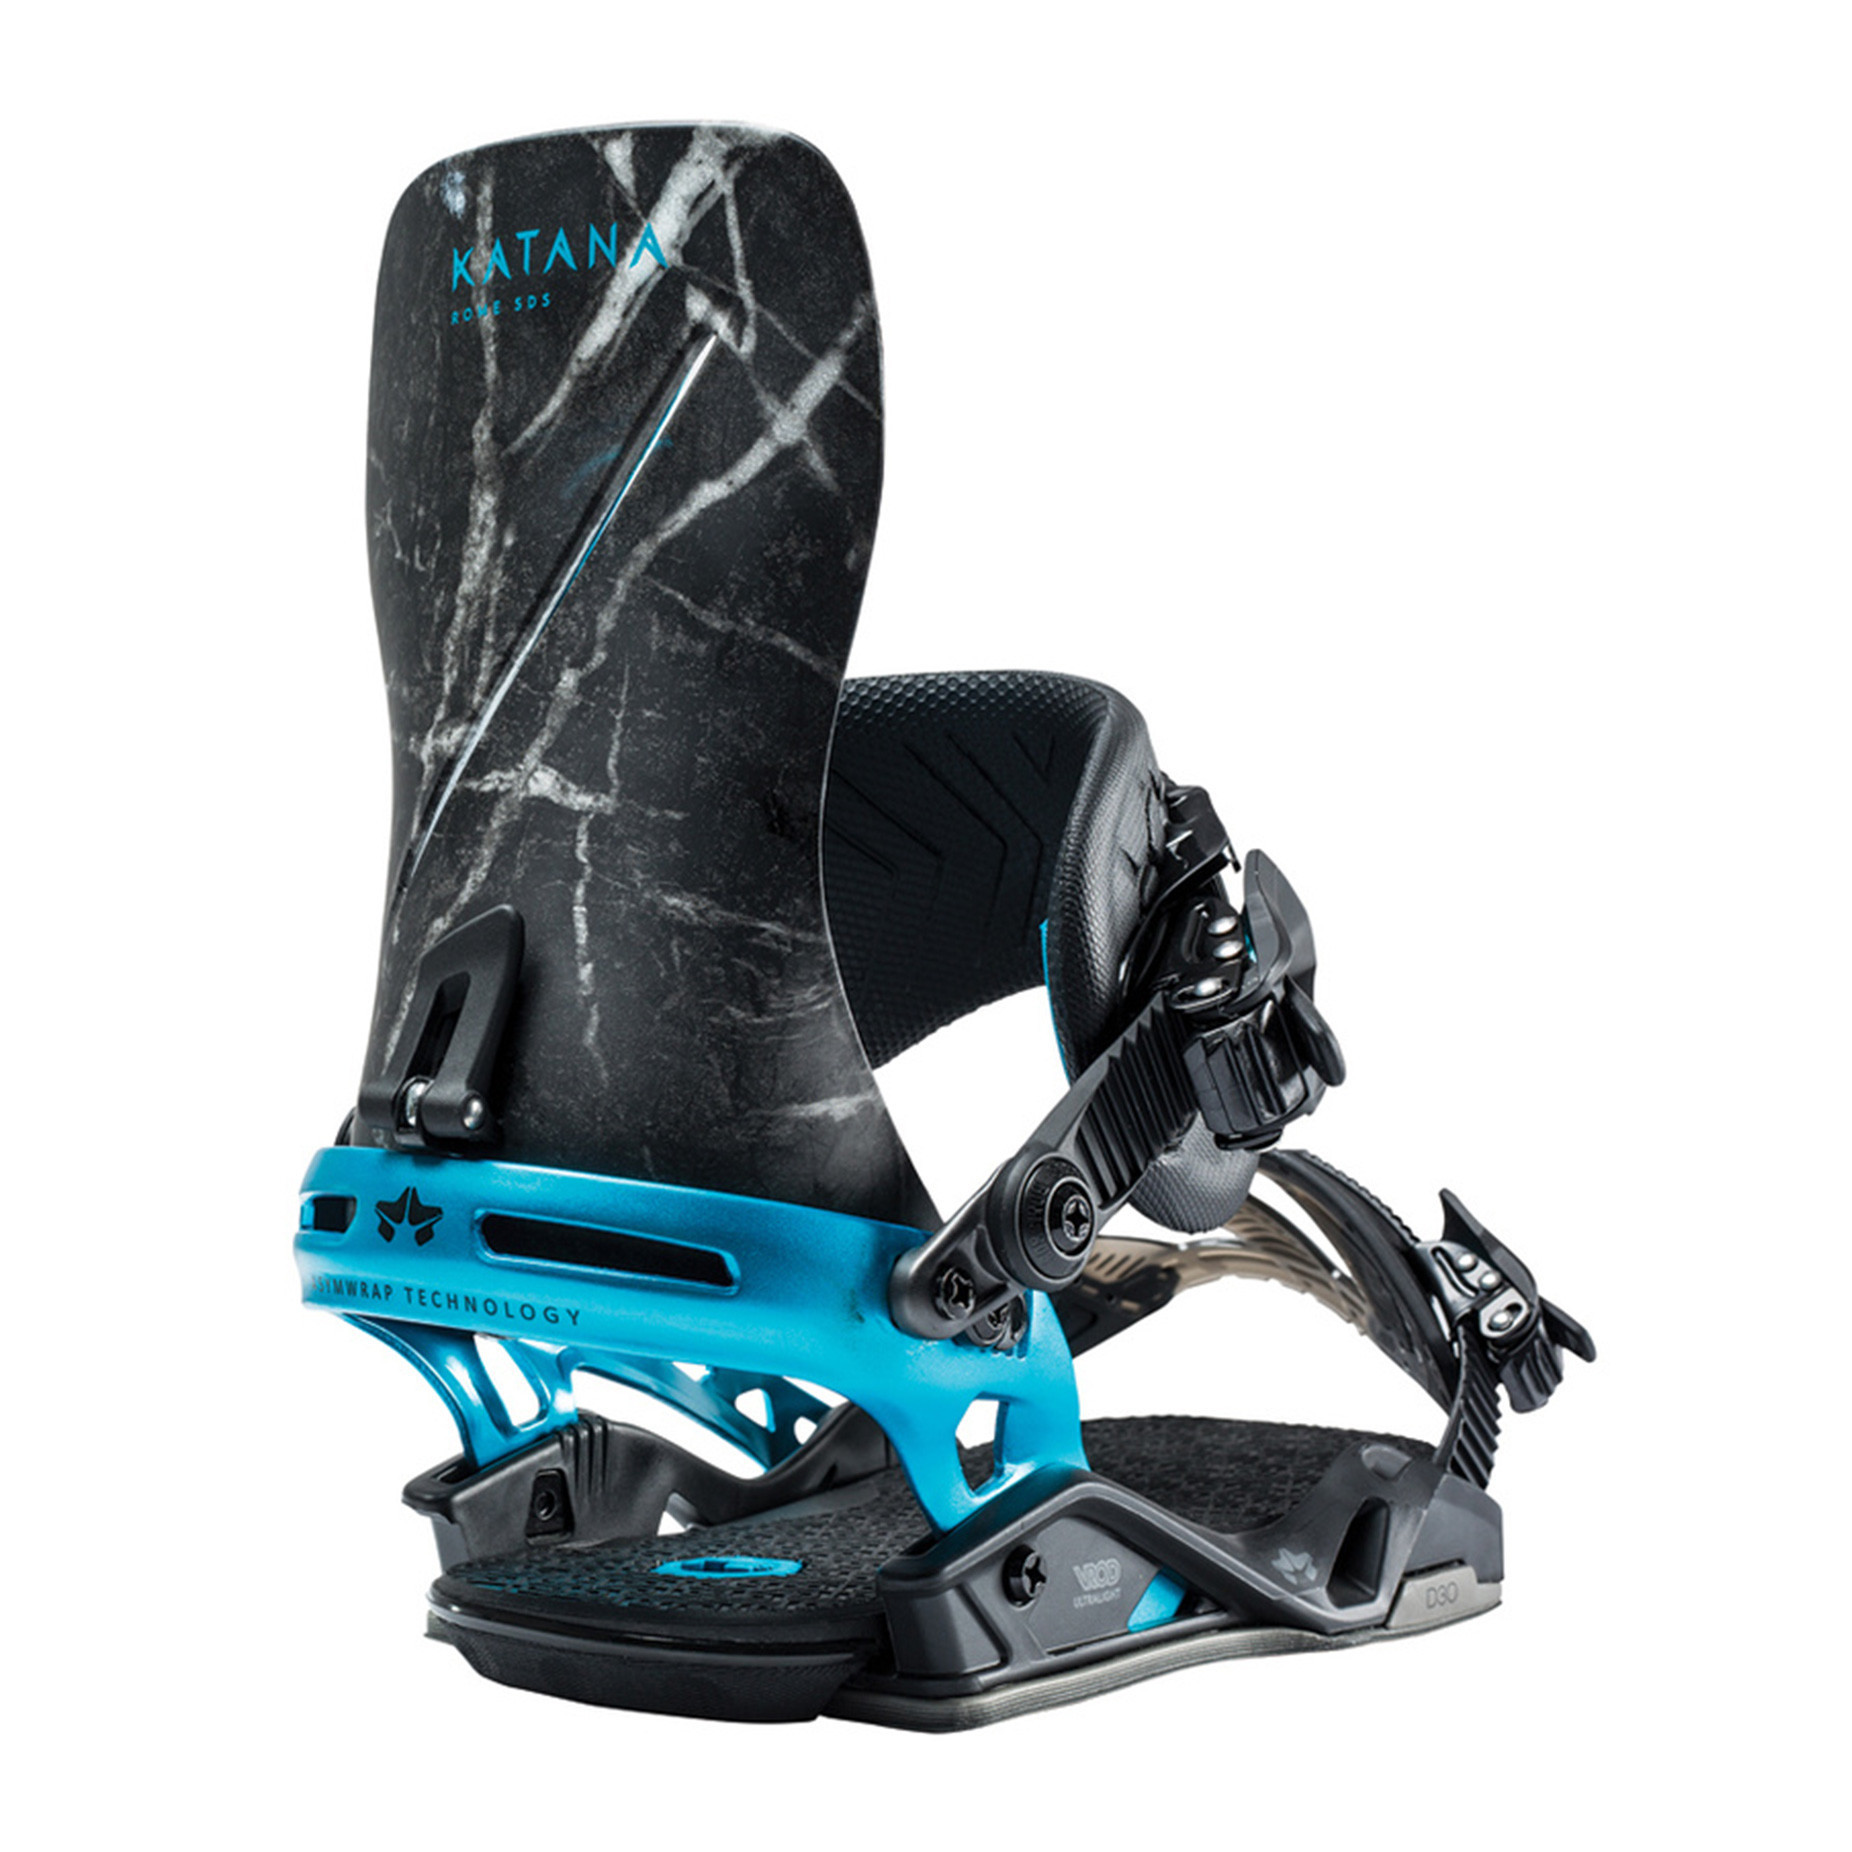 Marble Katana Snowboard Bindings by Rome Snowboards (2019 collection)